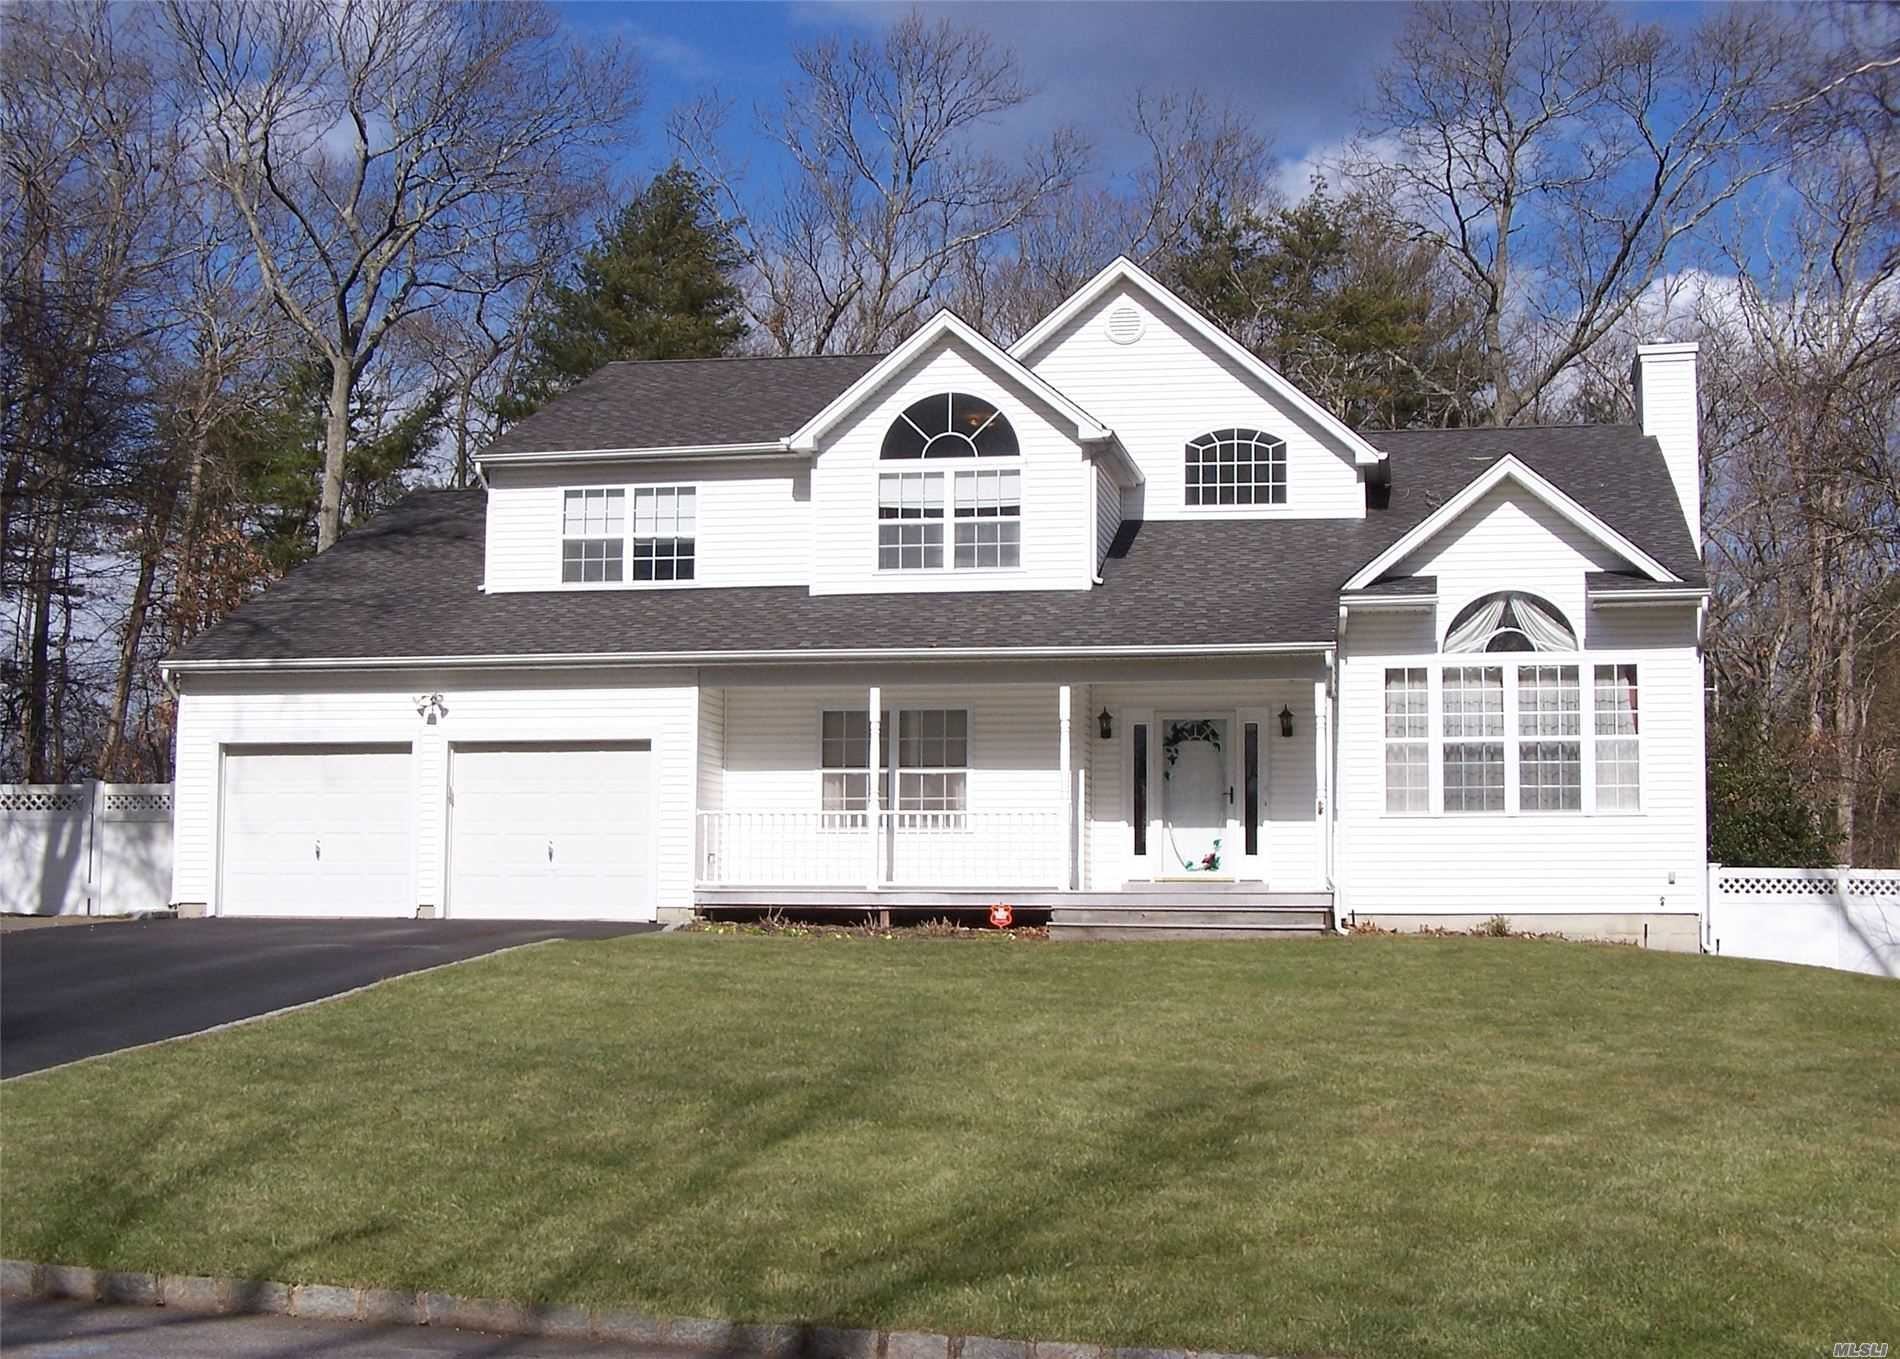 1 Crest Court, Middle Island, NY 11953 - MLS#: 3204536